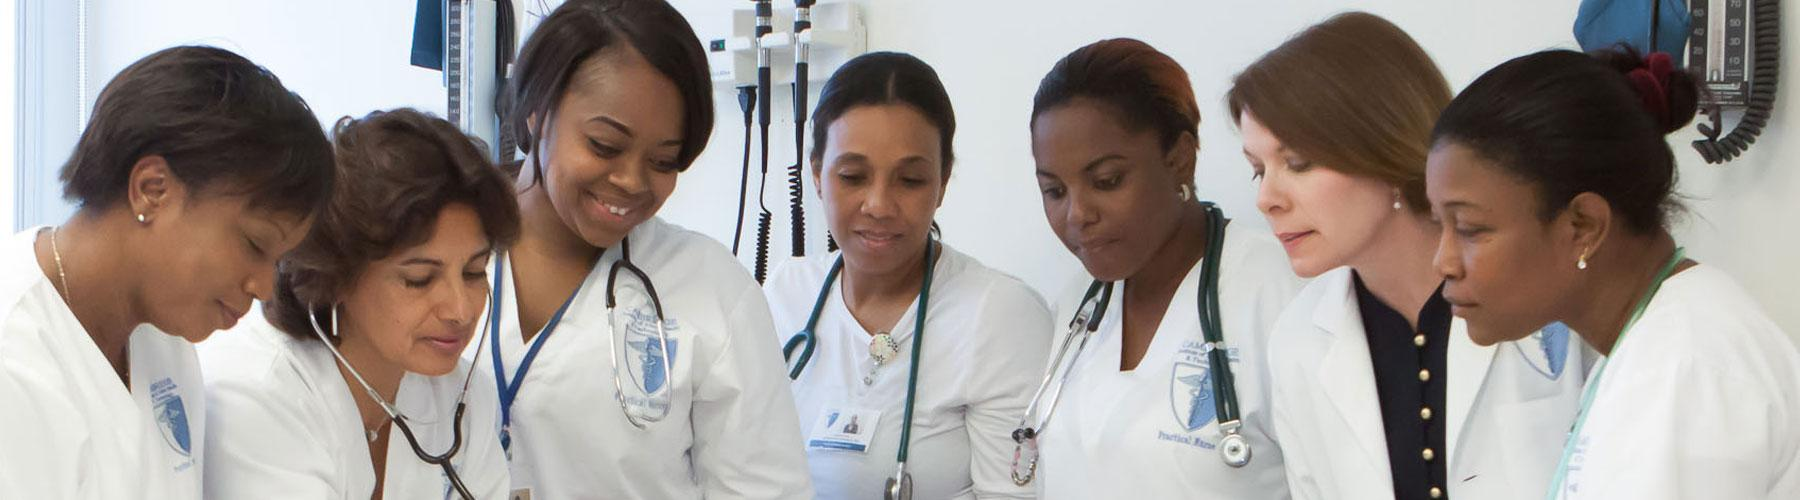 Fort lauderdale fl medical training school nursing programs near institutionally accredited florida healthcare training institution providing healthcare programs job placement and career service assistance 1betcityfo Images